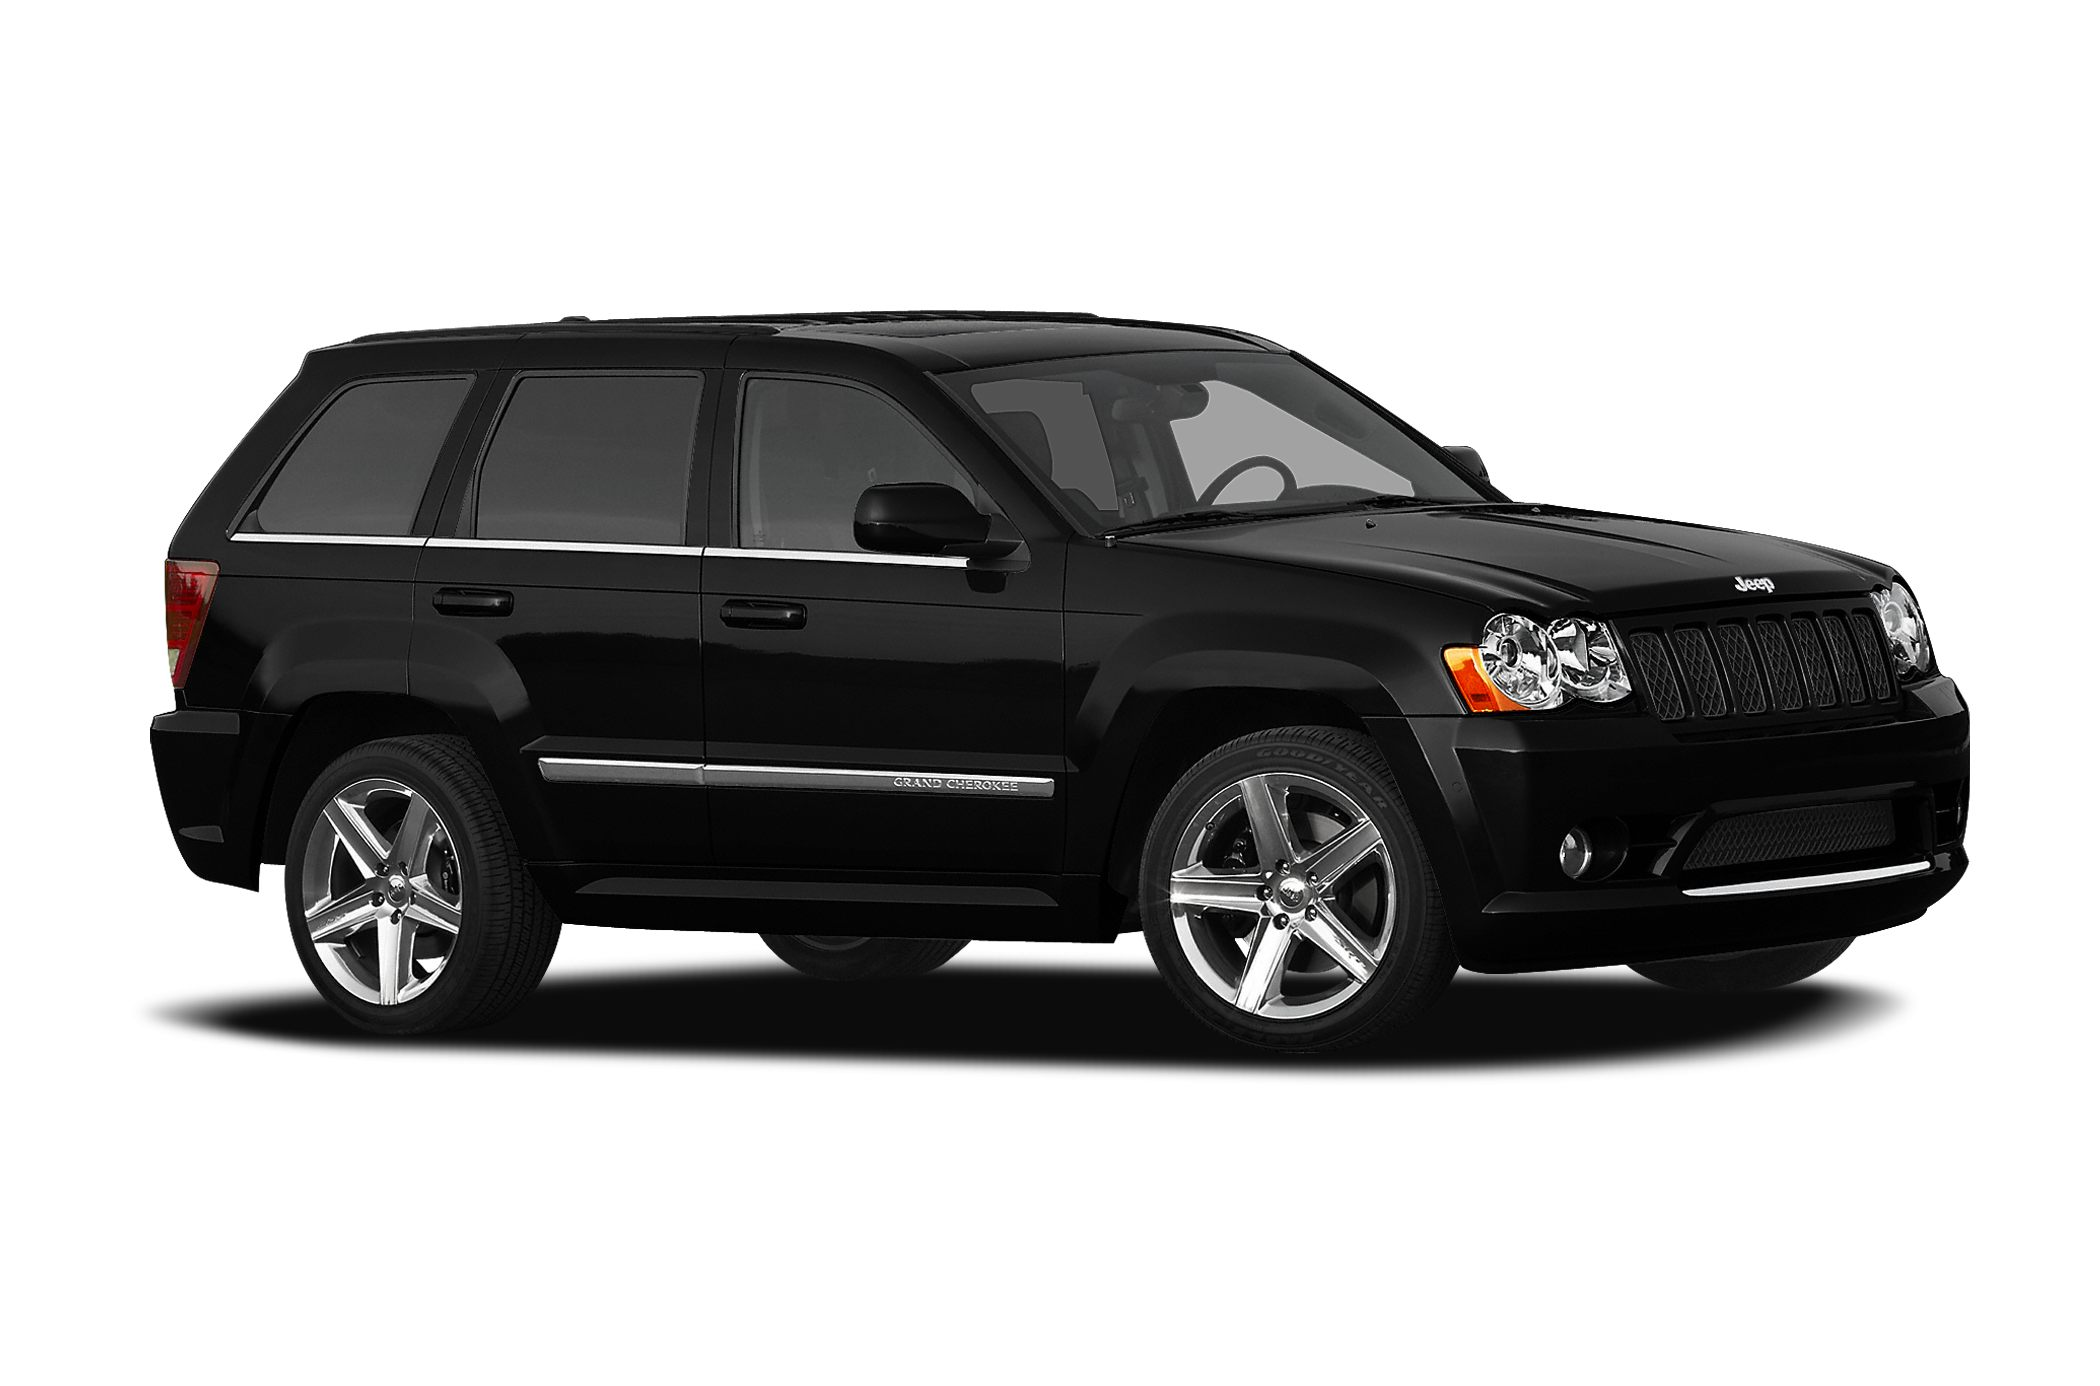 2010 Jeep Grand Cherokee Srt8 >> 2010 Jeep Grand Cherokee Srt8 4dr 4x4 Pictures